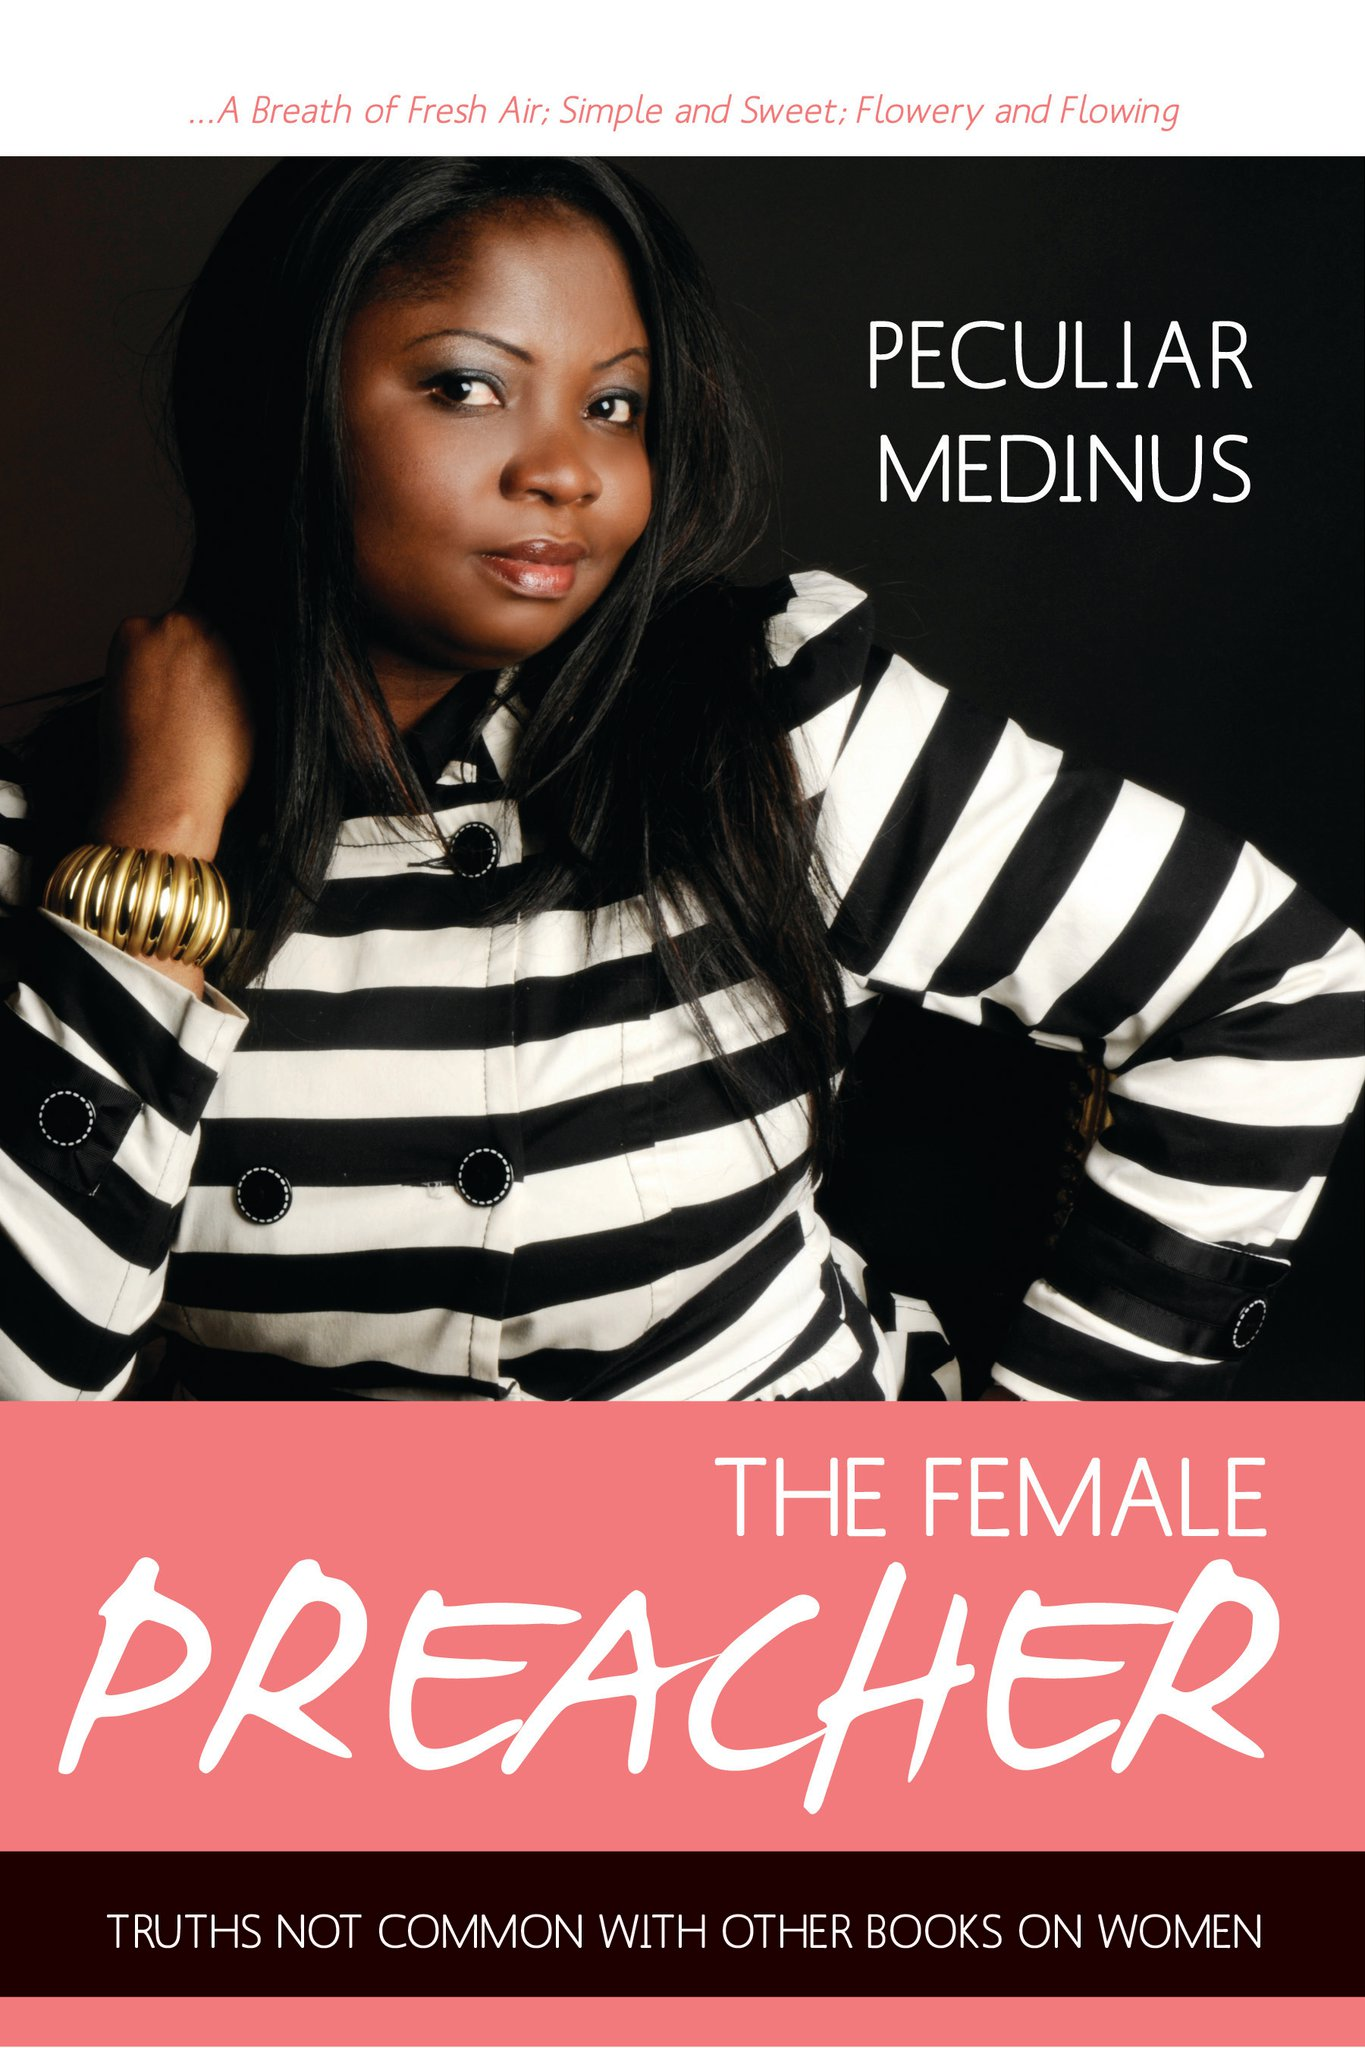 THE FEMALE PREACHER